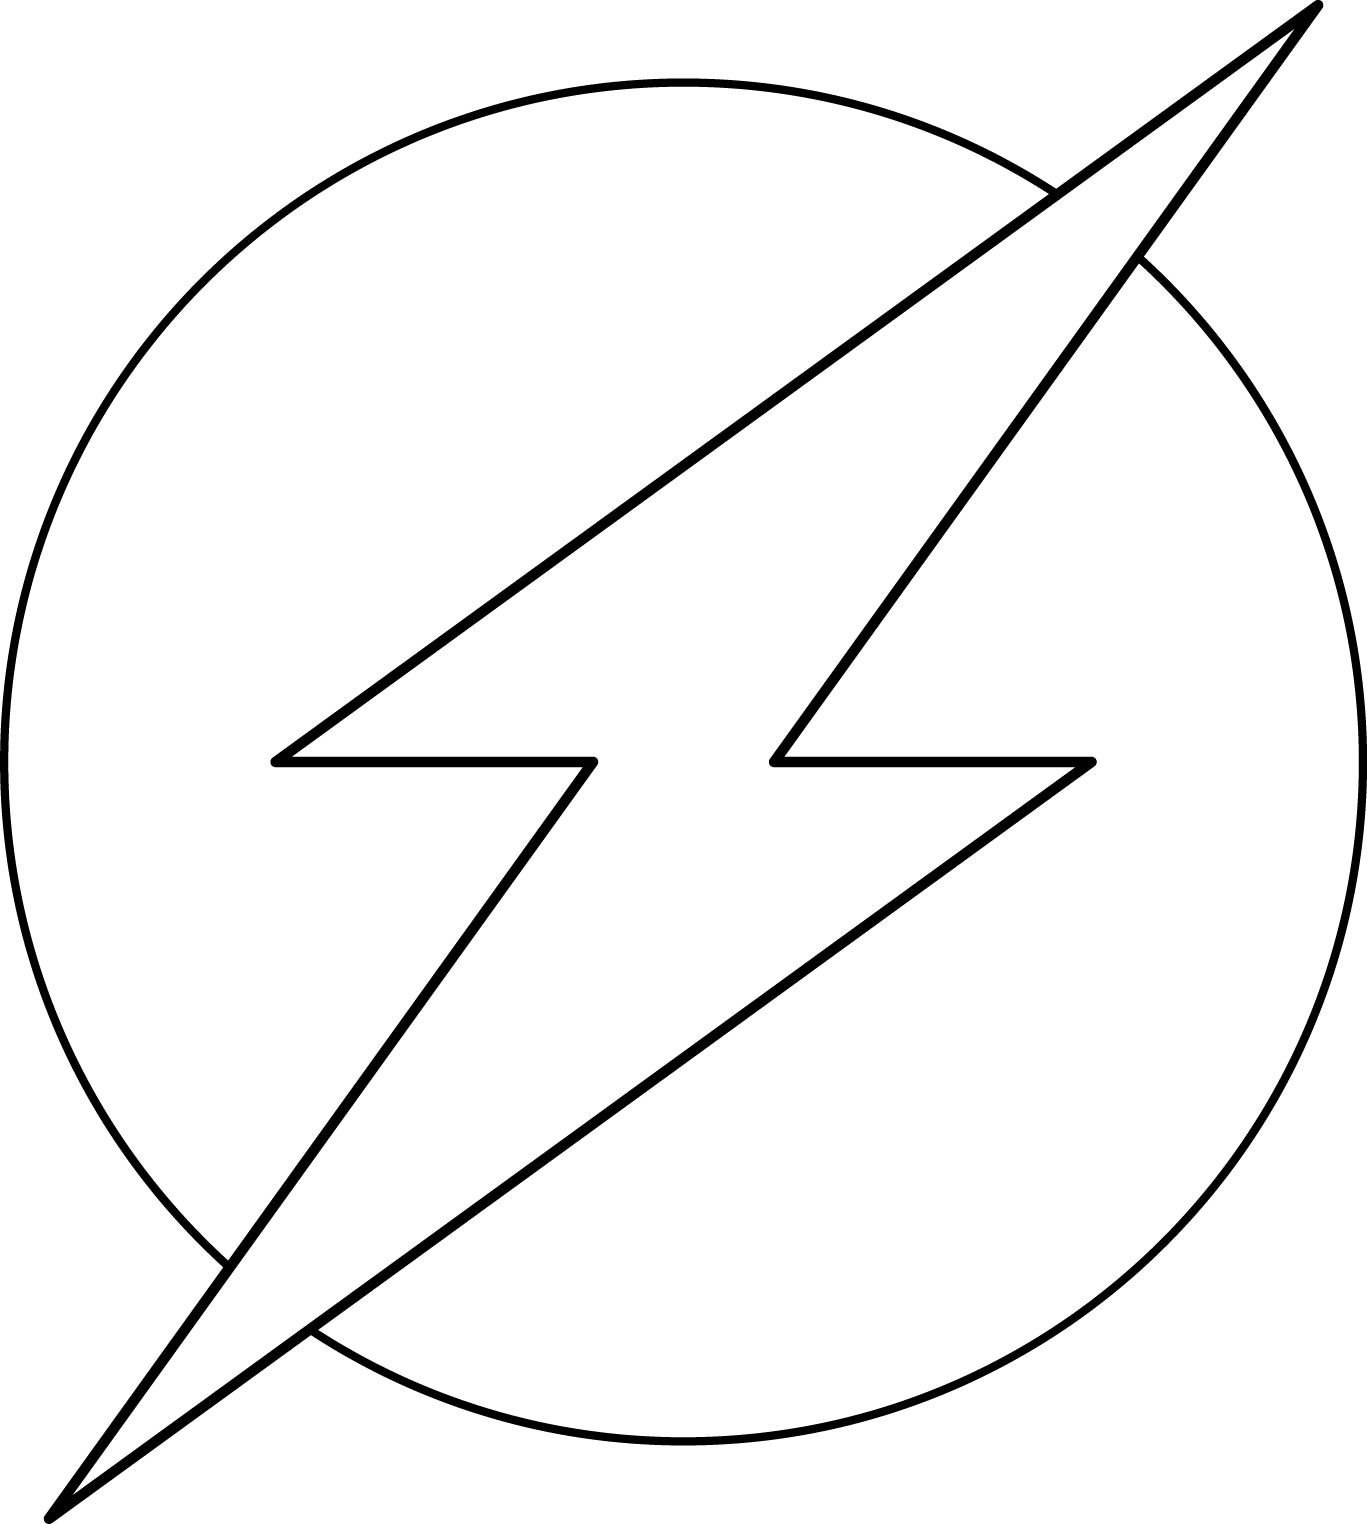 The Flash Superhero Logo Add Another Outer Circle And You Re Good